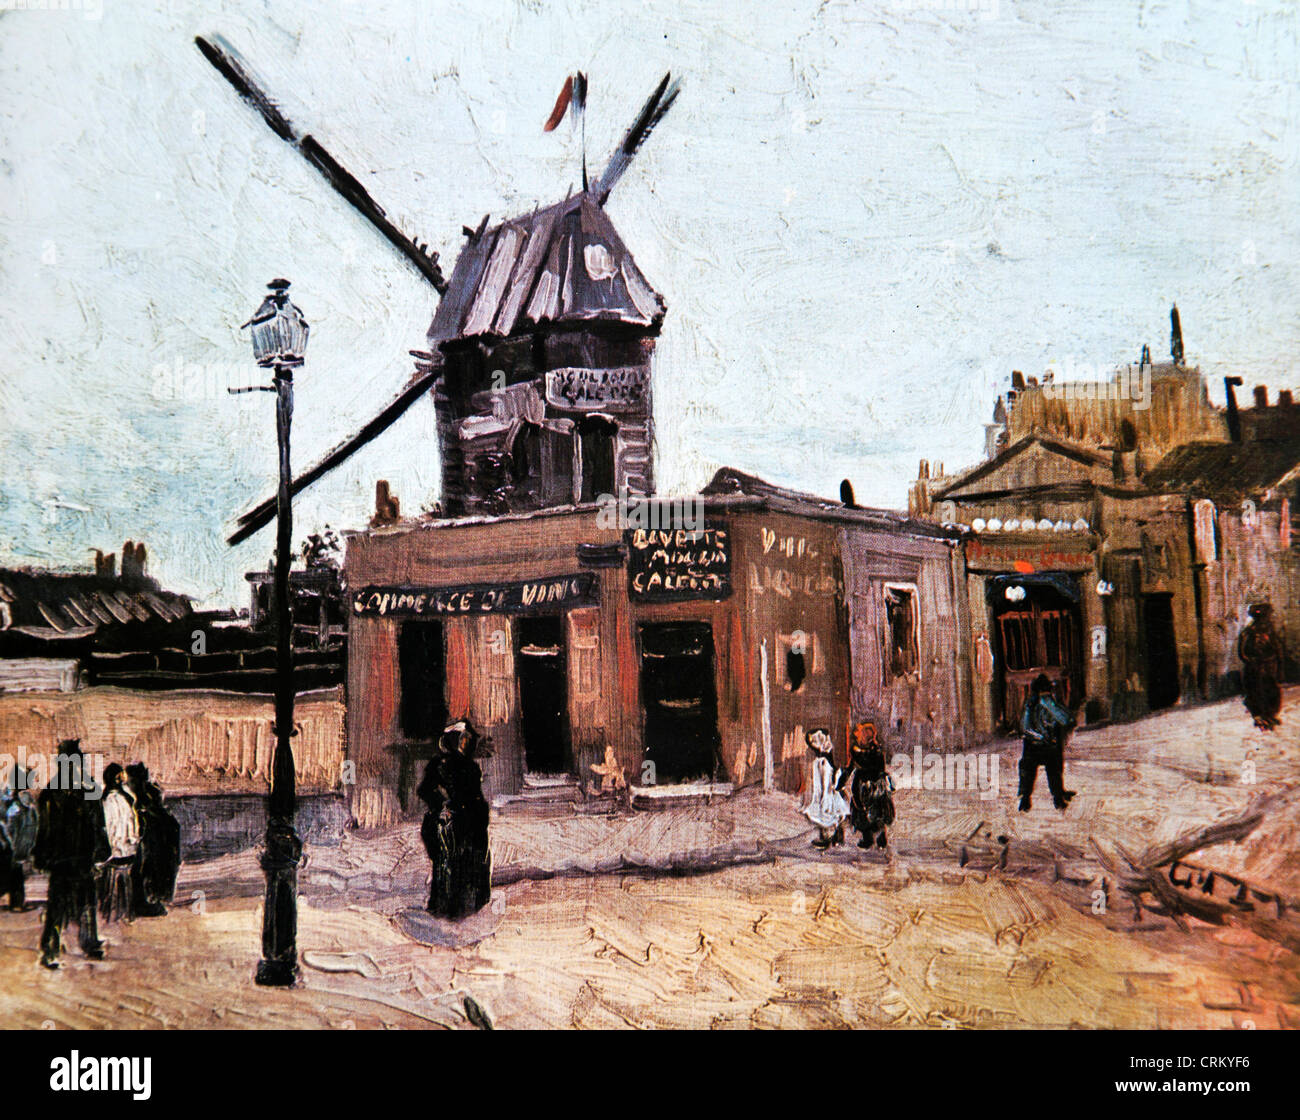 Le moulin de la galette van gogh stock photo royalty free image 48996506 - Moulin de la borderie ...